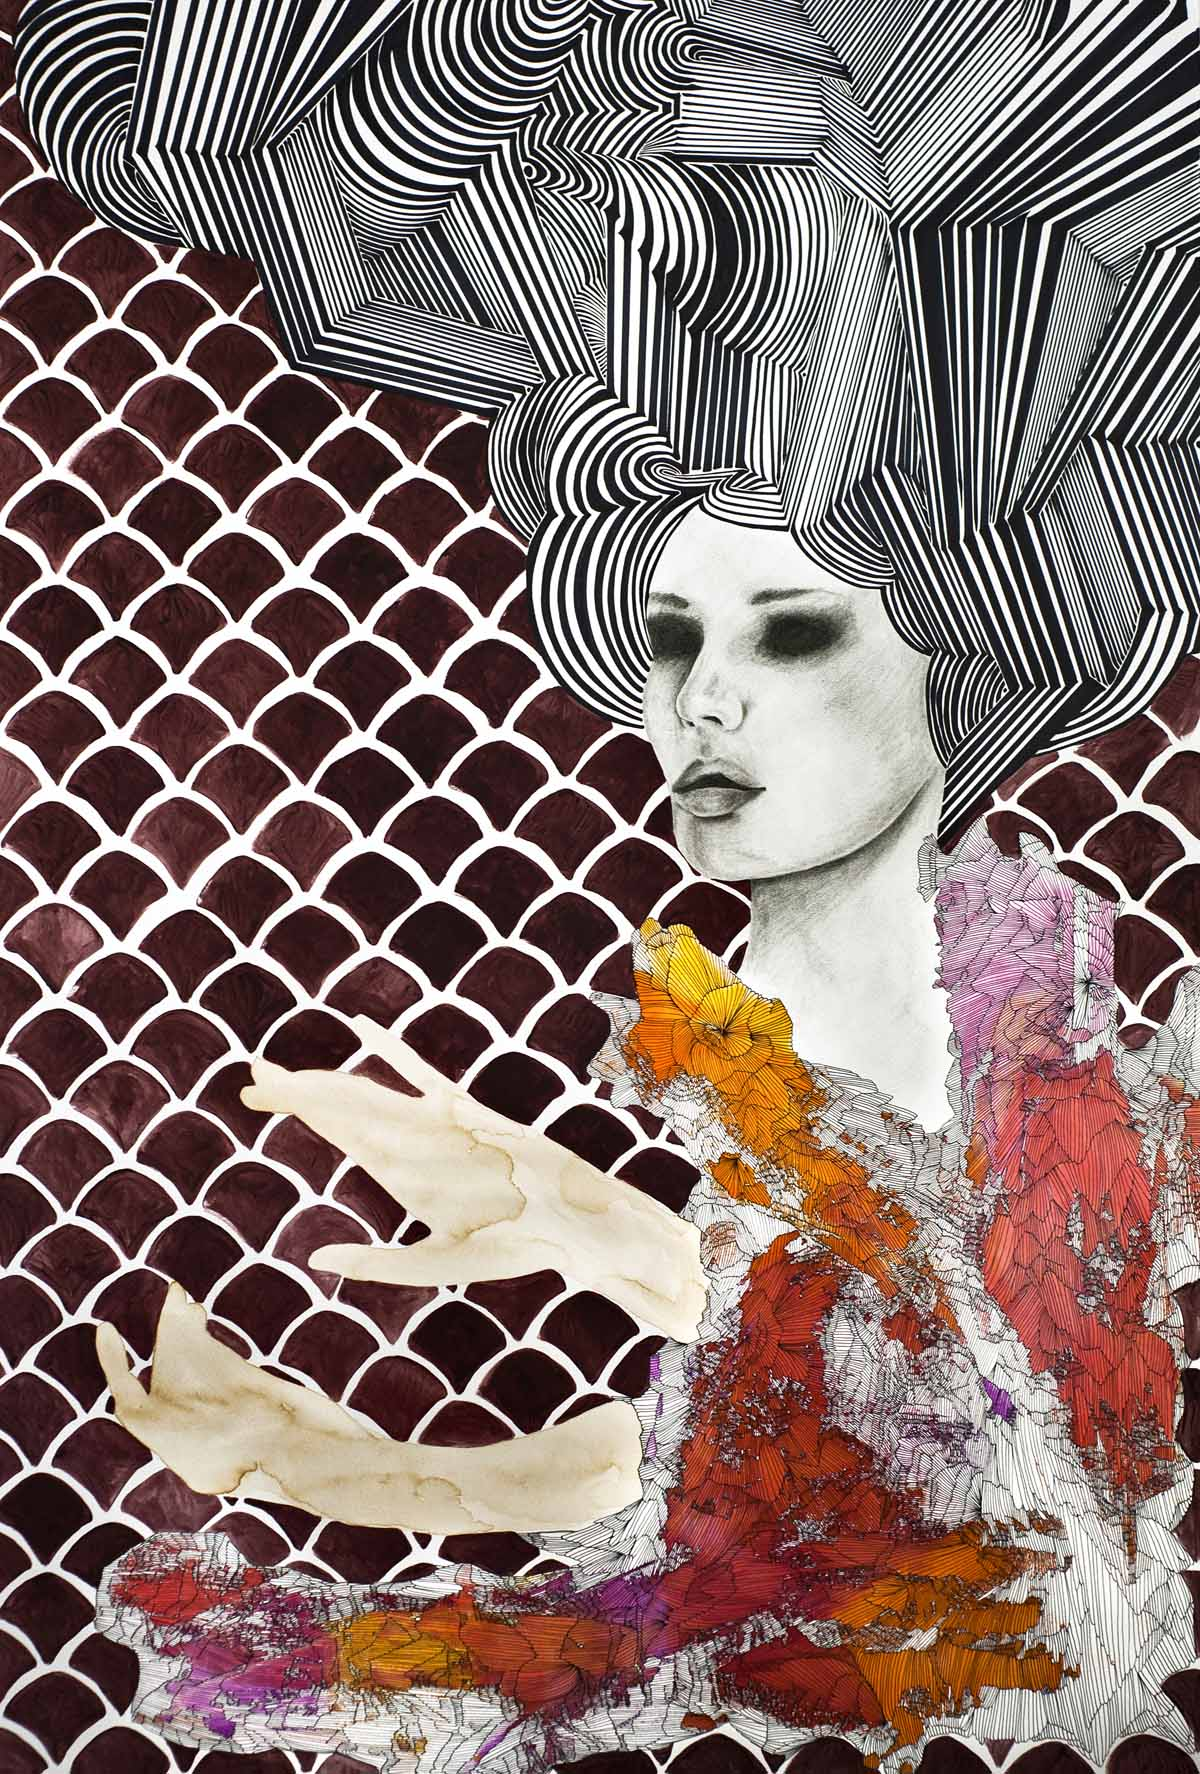 Siren of Future ink, graphite, acrylic, coffee, on paper 49 x 34.5 inches LBR 002G